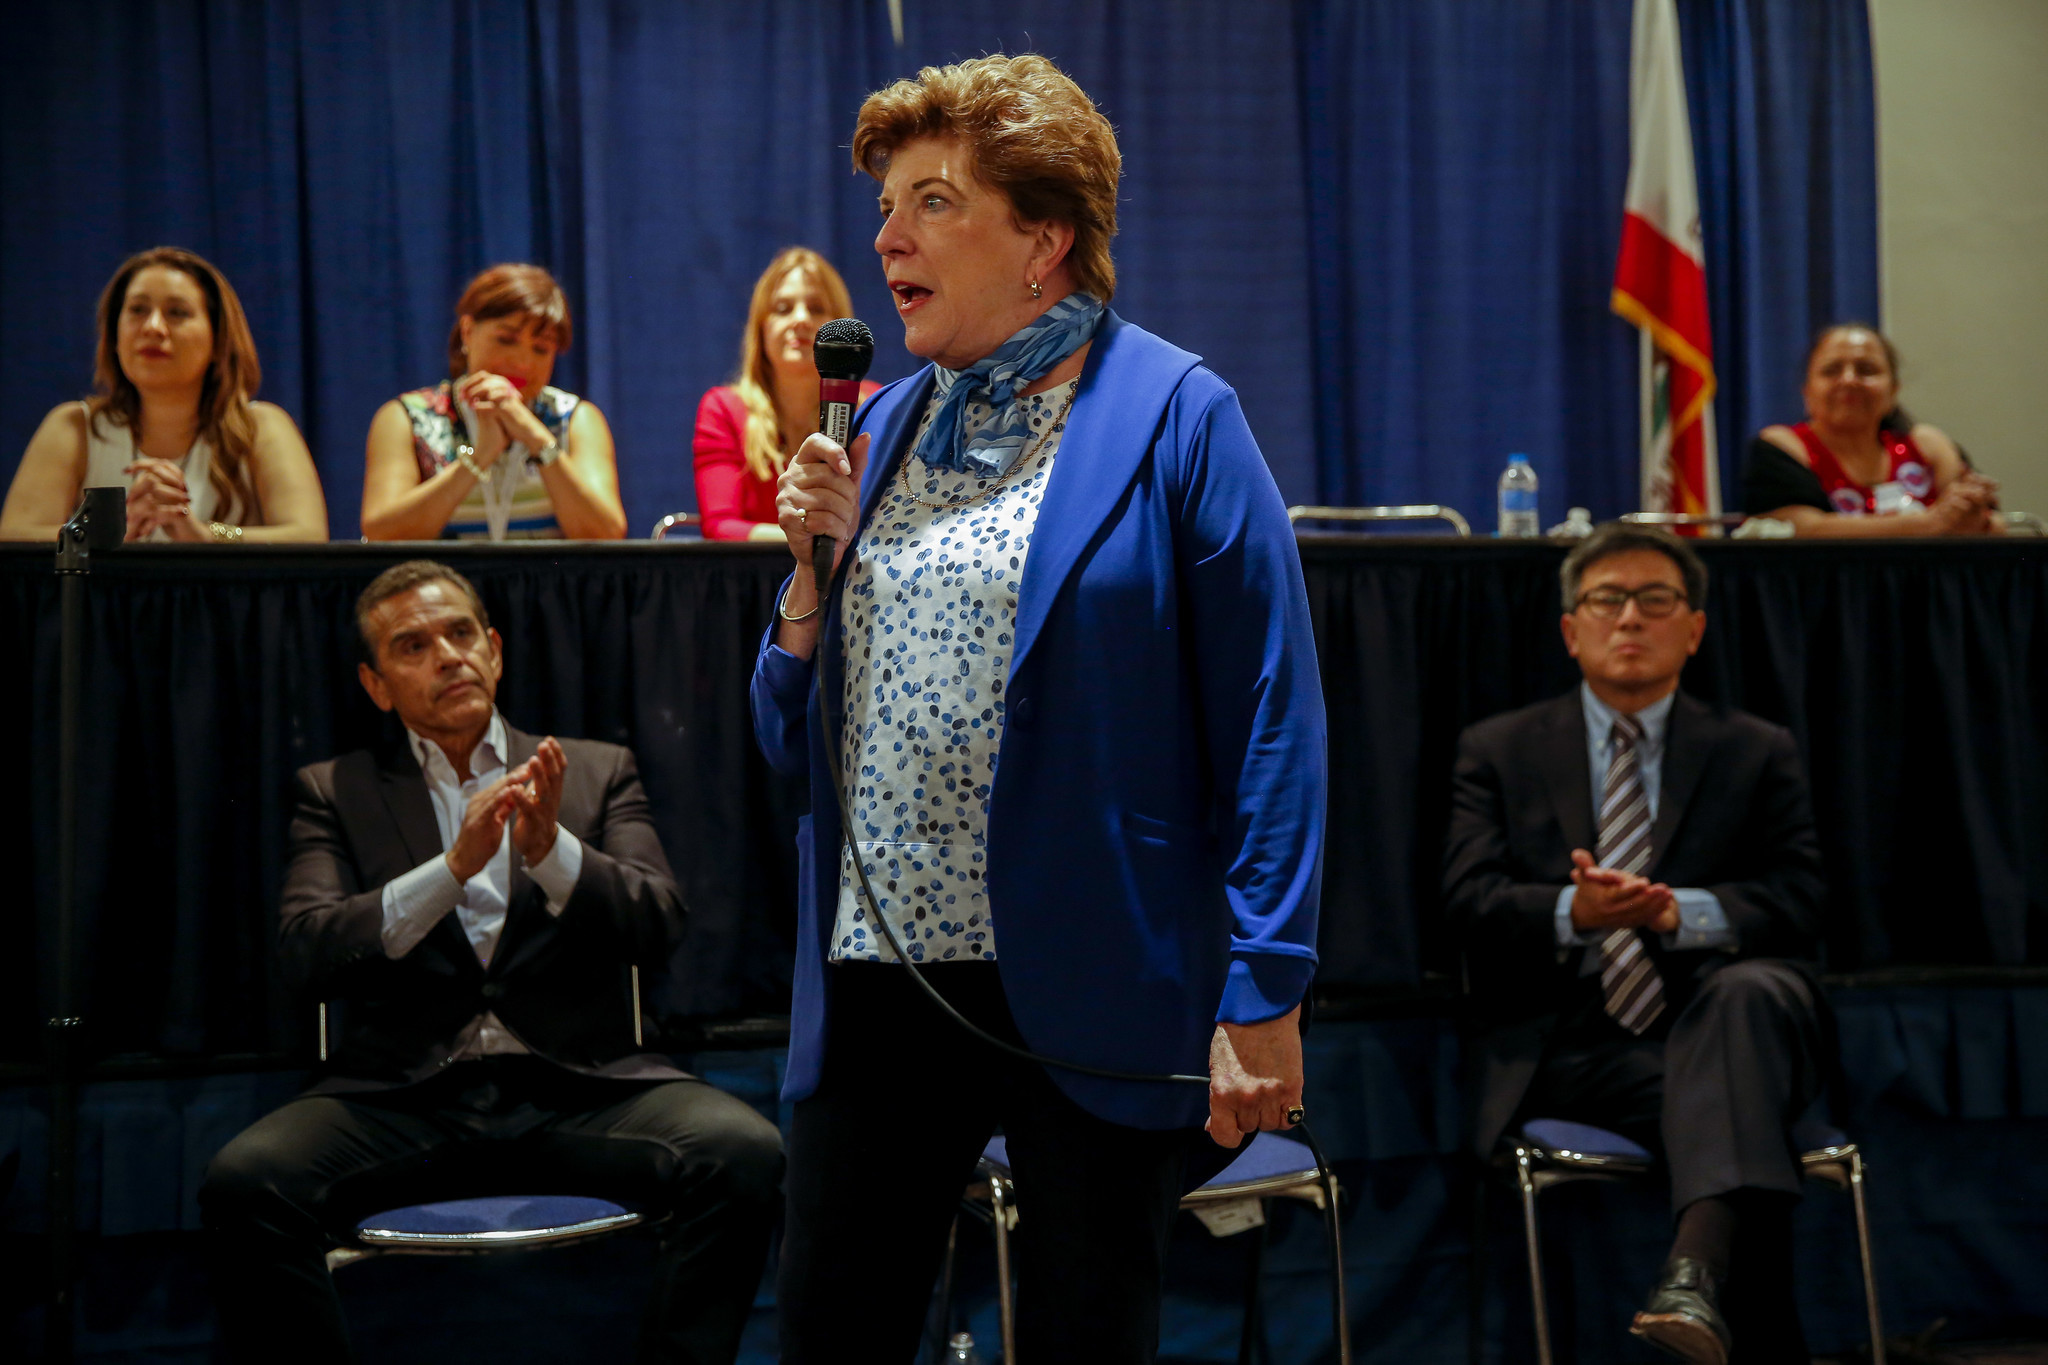 Gubernatorial candidate Delaine Eastin at the California Democratic Party convention. (Jay L. Clendenin / Los Angeles Times)